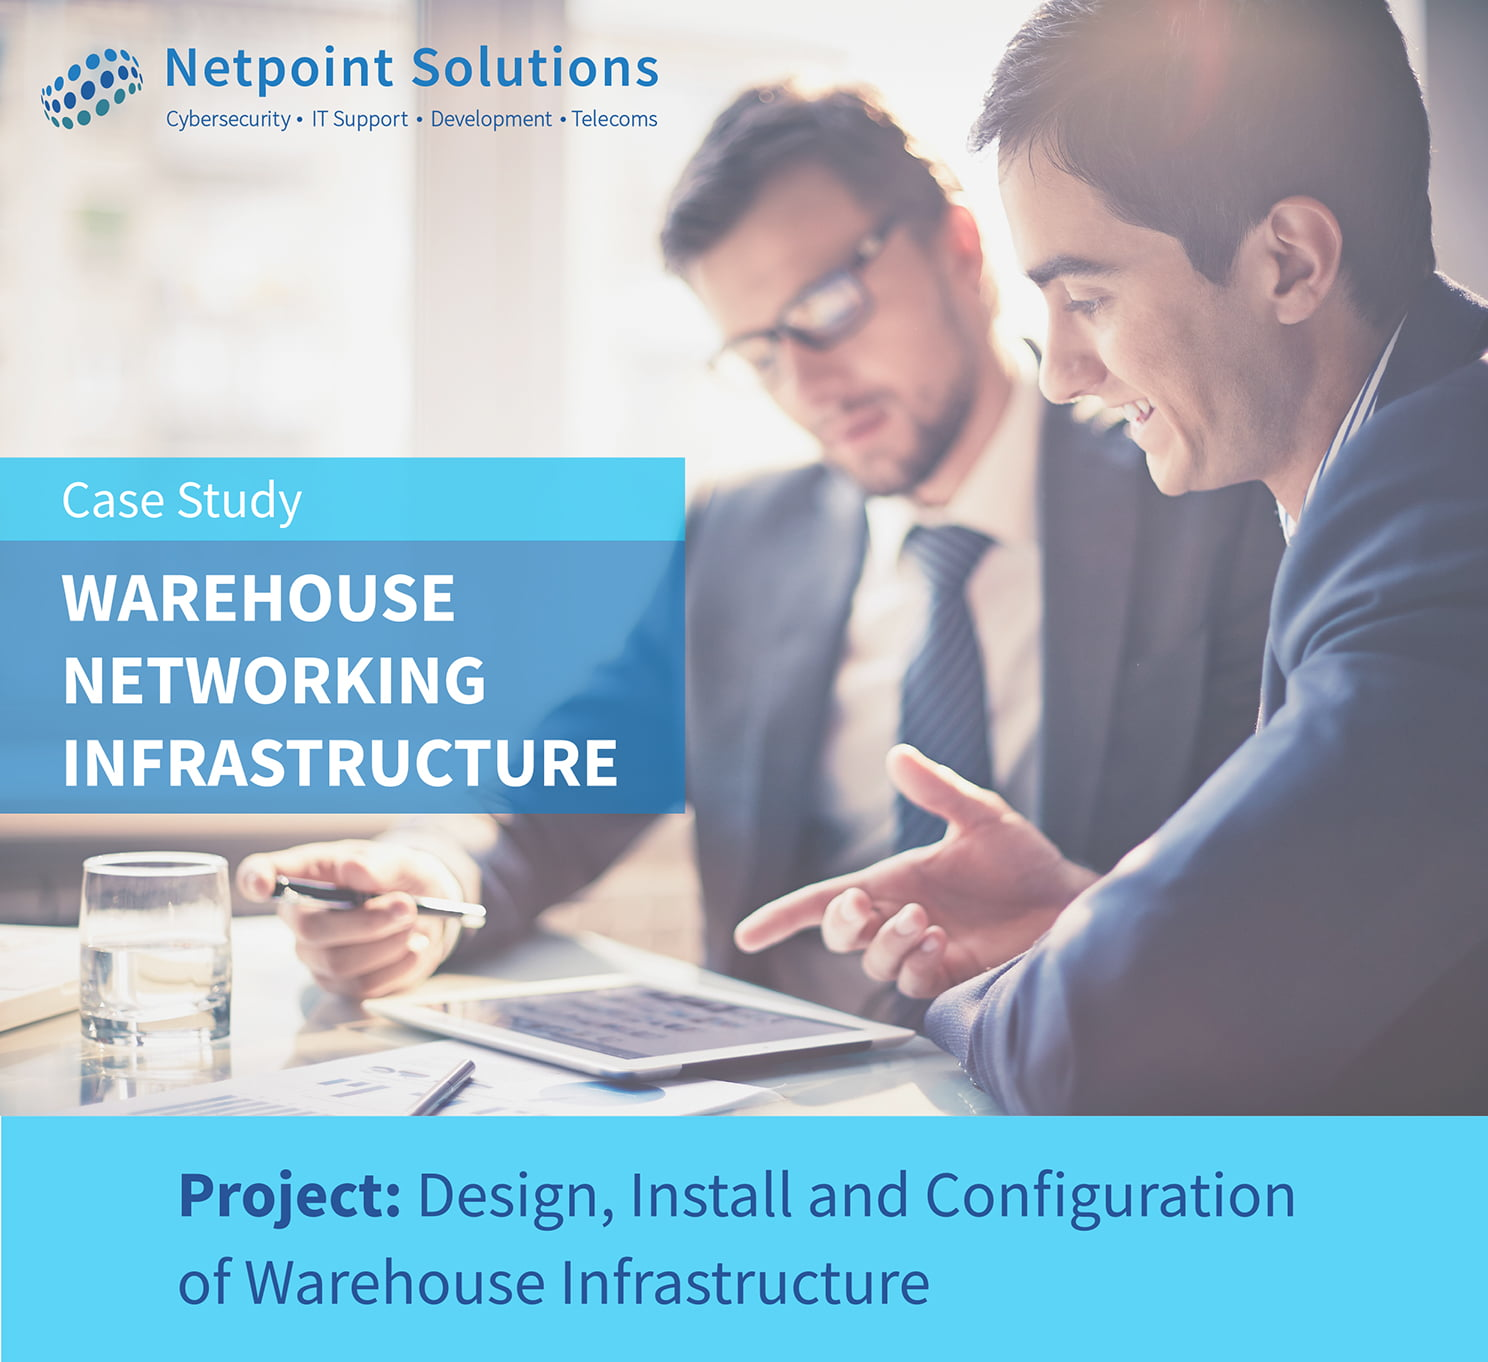 Case Study 5 - Warehouse Networking Infrastructure